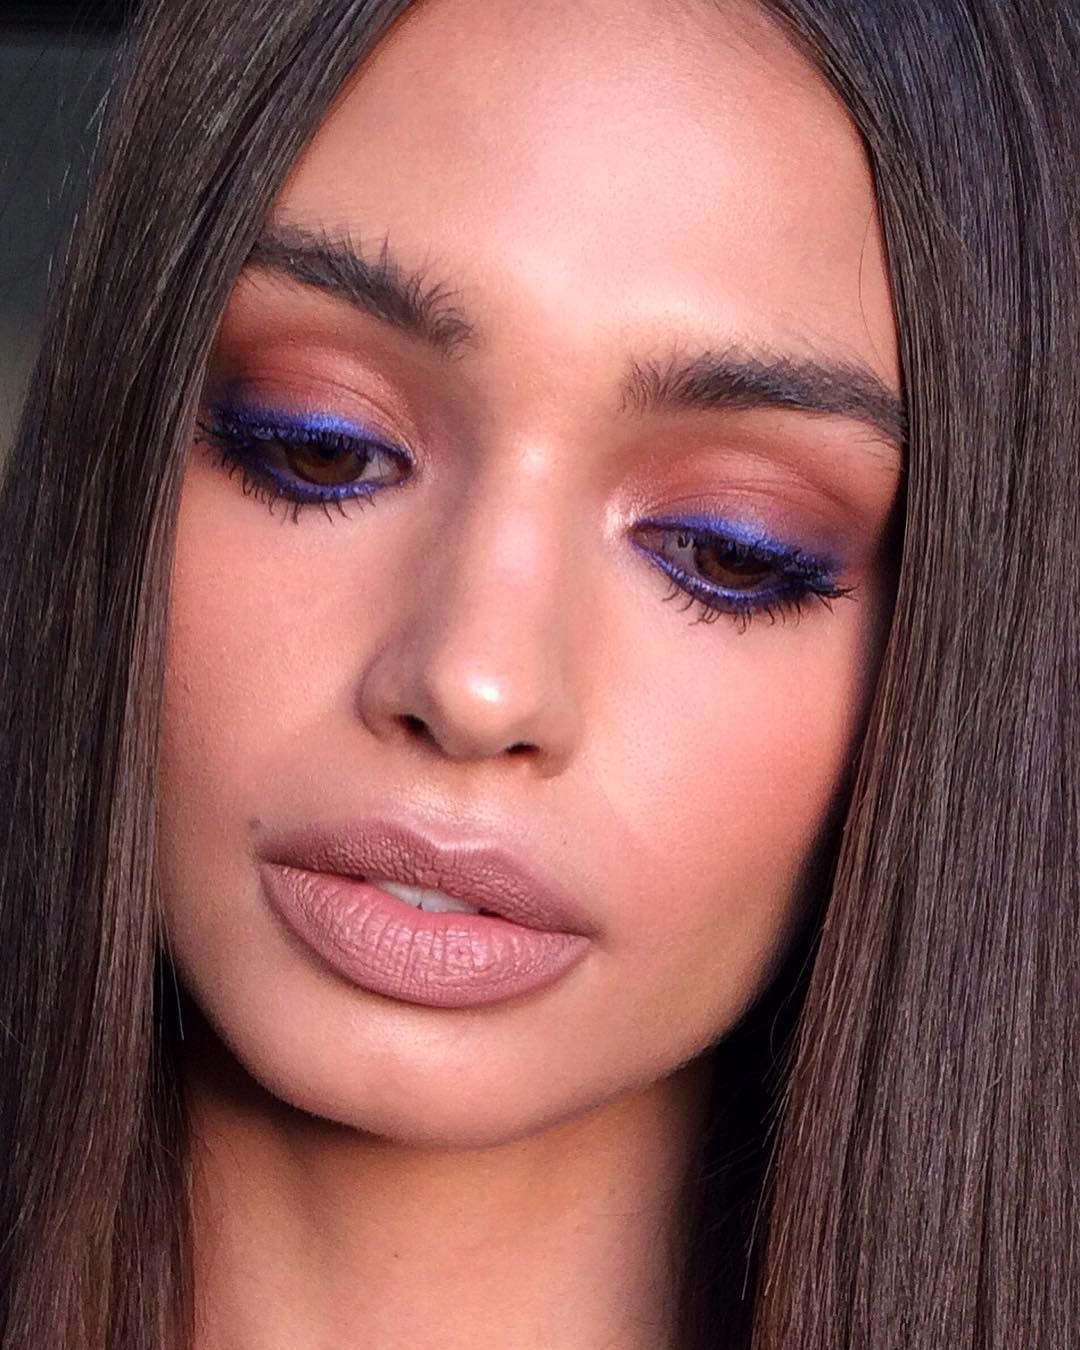 Pin by Gabrielle Nicole on Makeup | Pinterest | Brittany, Makeup and ...